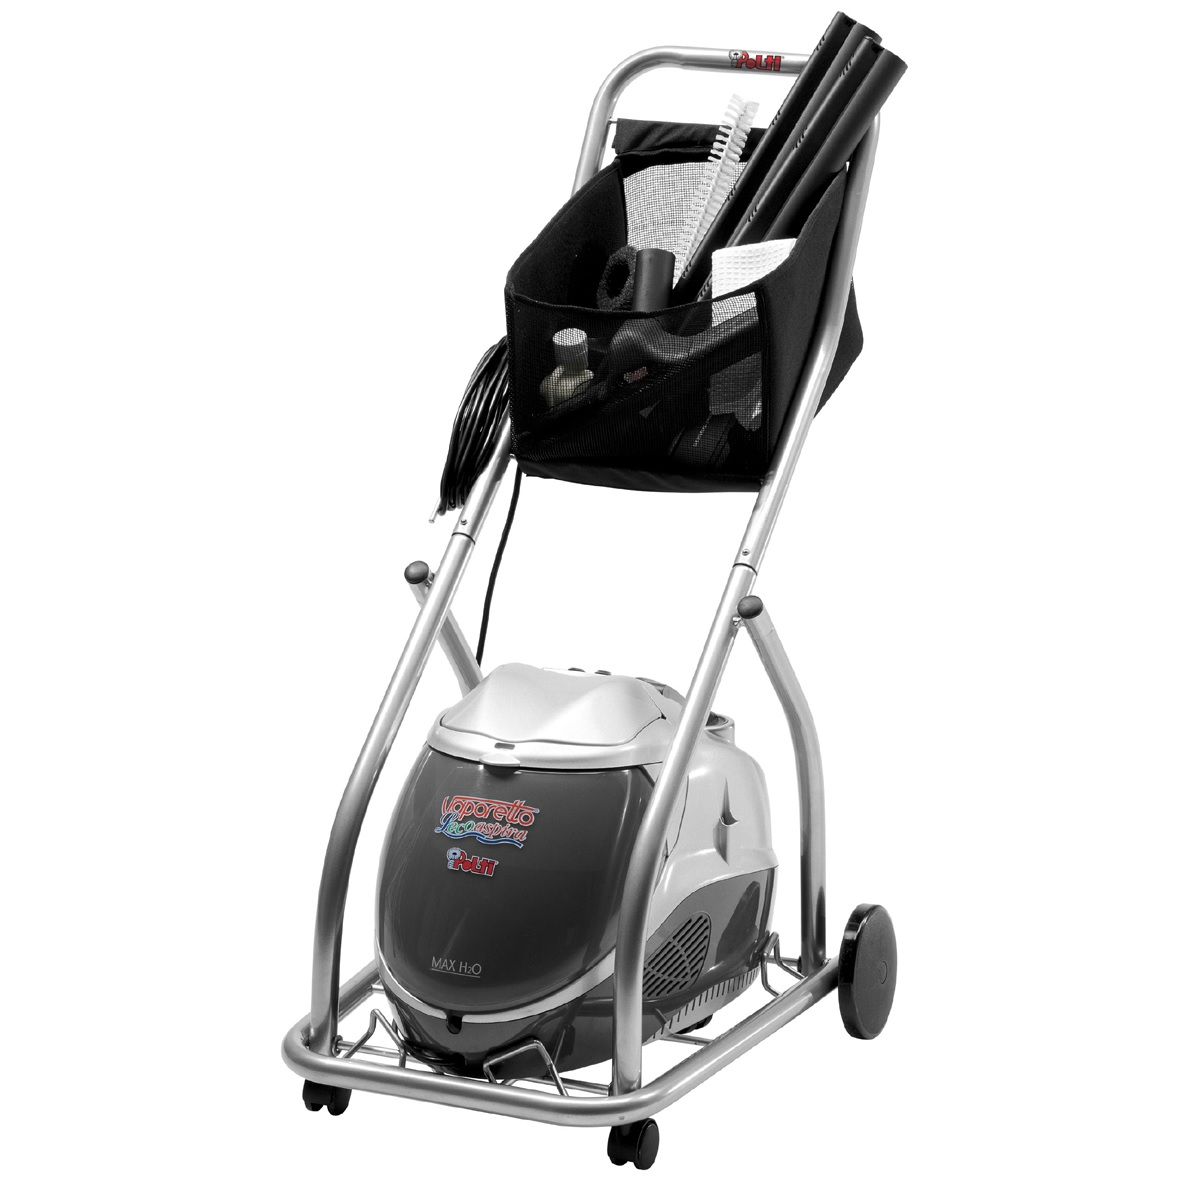 professional steam cleaning machine